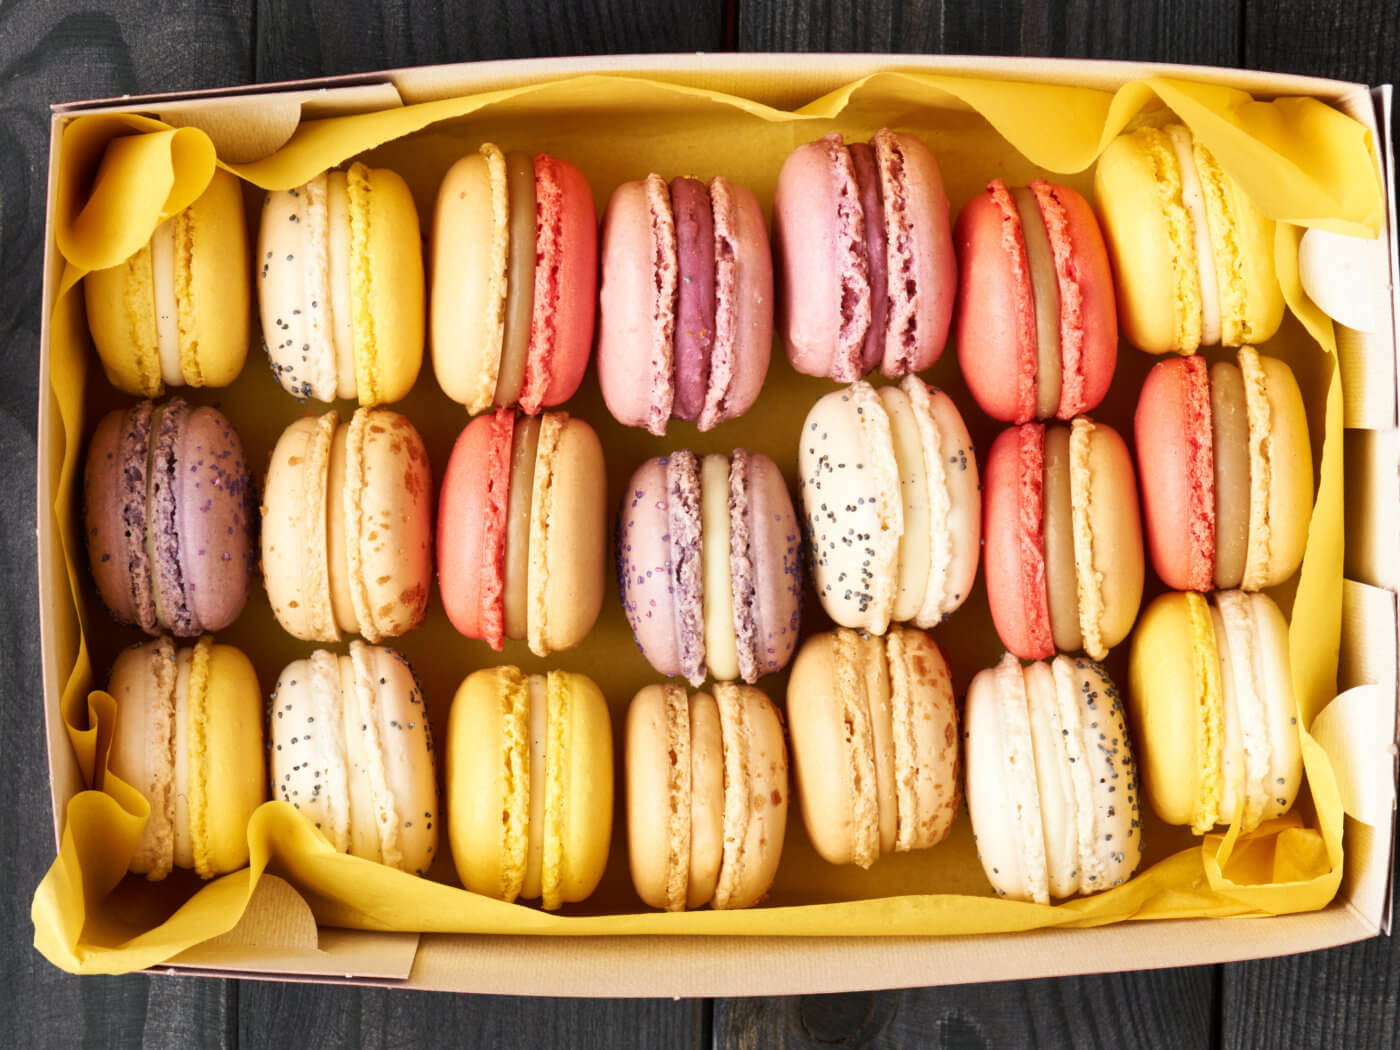 French delicious dessert macaroons in box